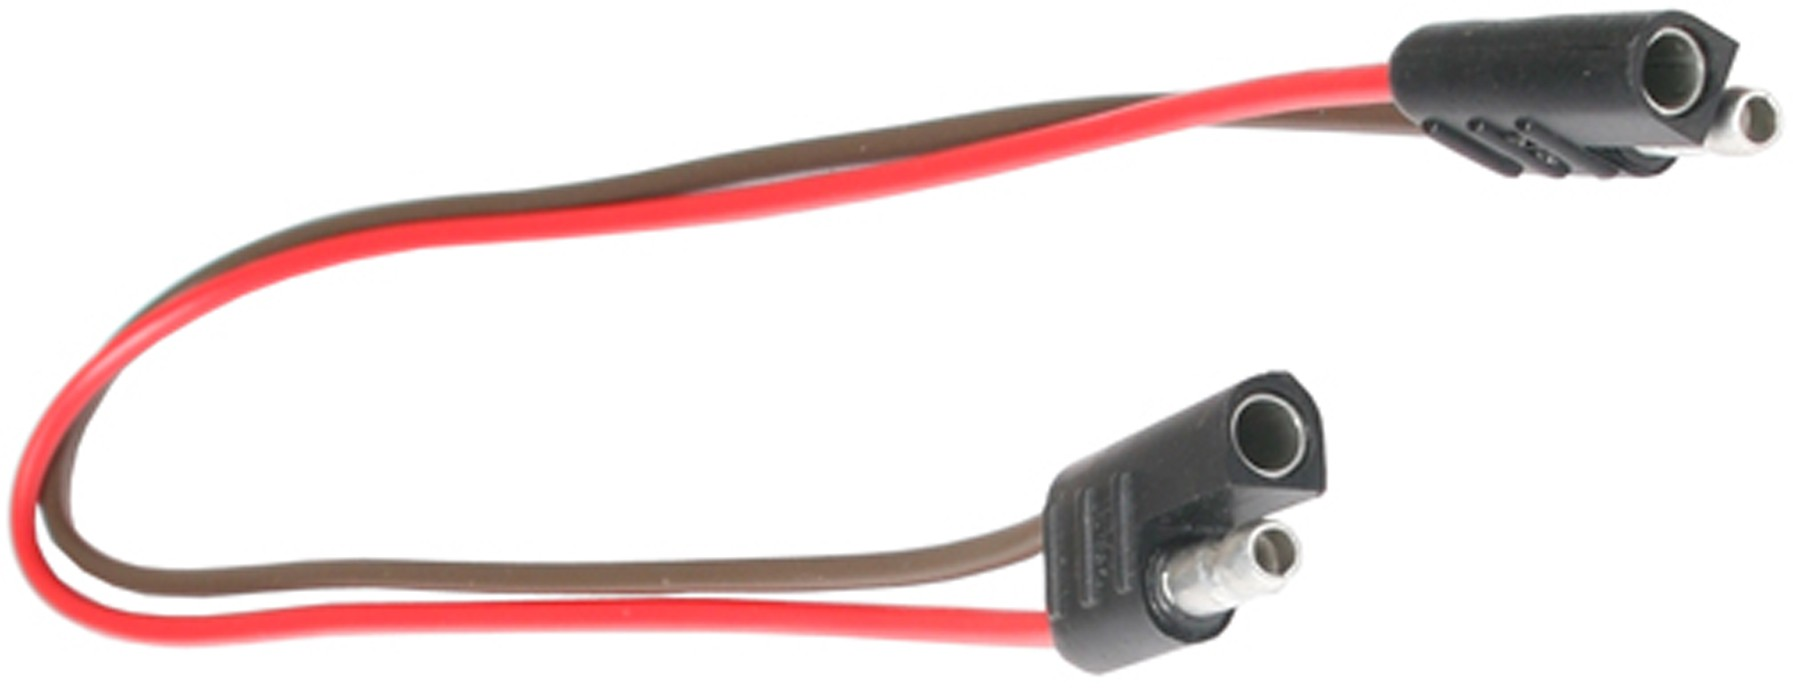 hight resolution of 12 wire harness 2 way flat connector car and trailer end loop motorcycle wiring harness for 1993 honda xr100r 2 wire wiring harness